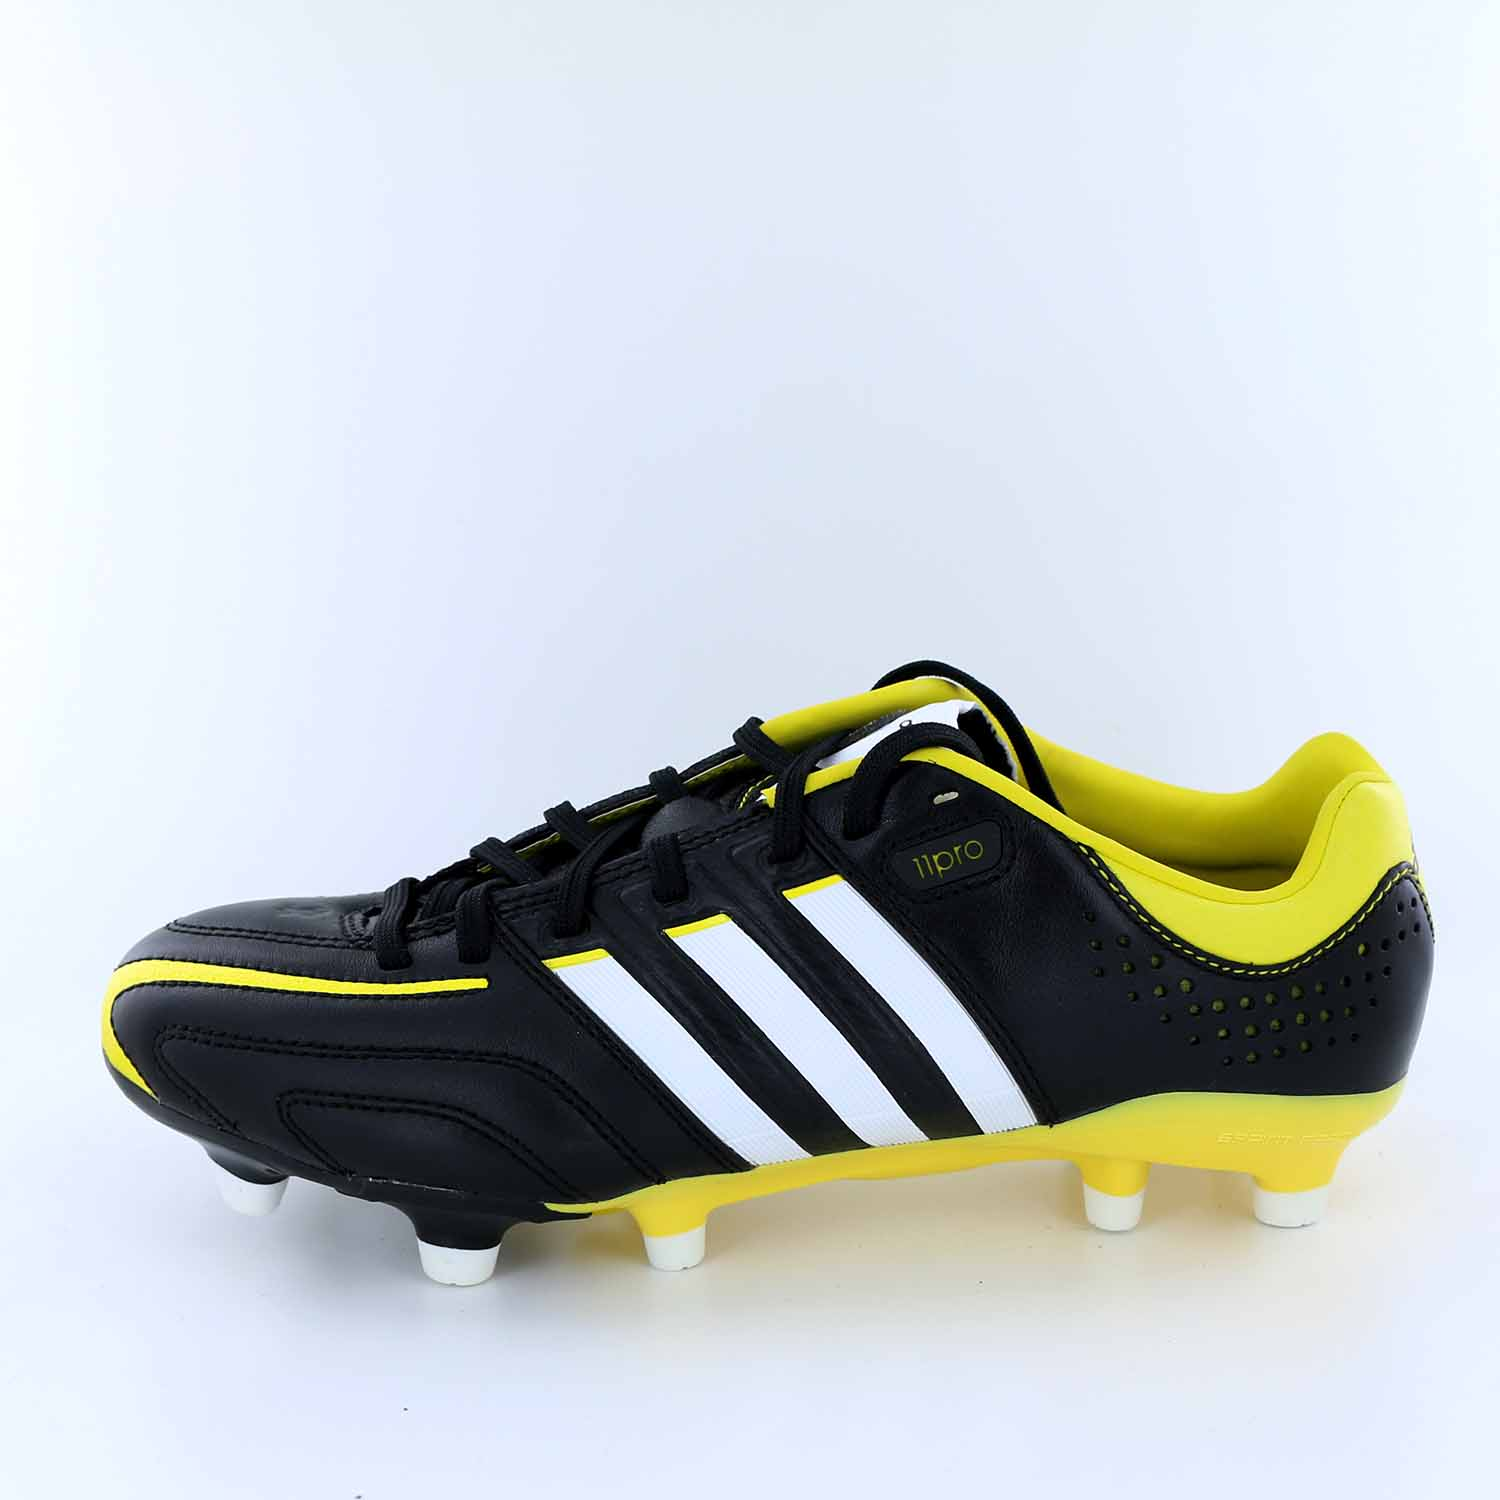 outlet store 8f0bc 2ad03 adidas adipure 11Pro TRX FG